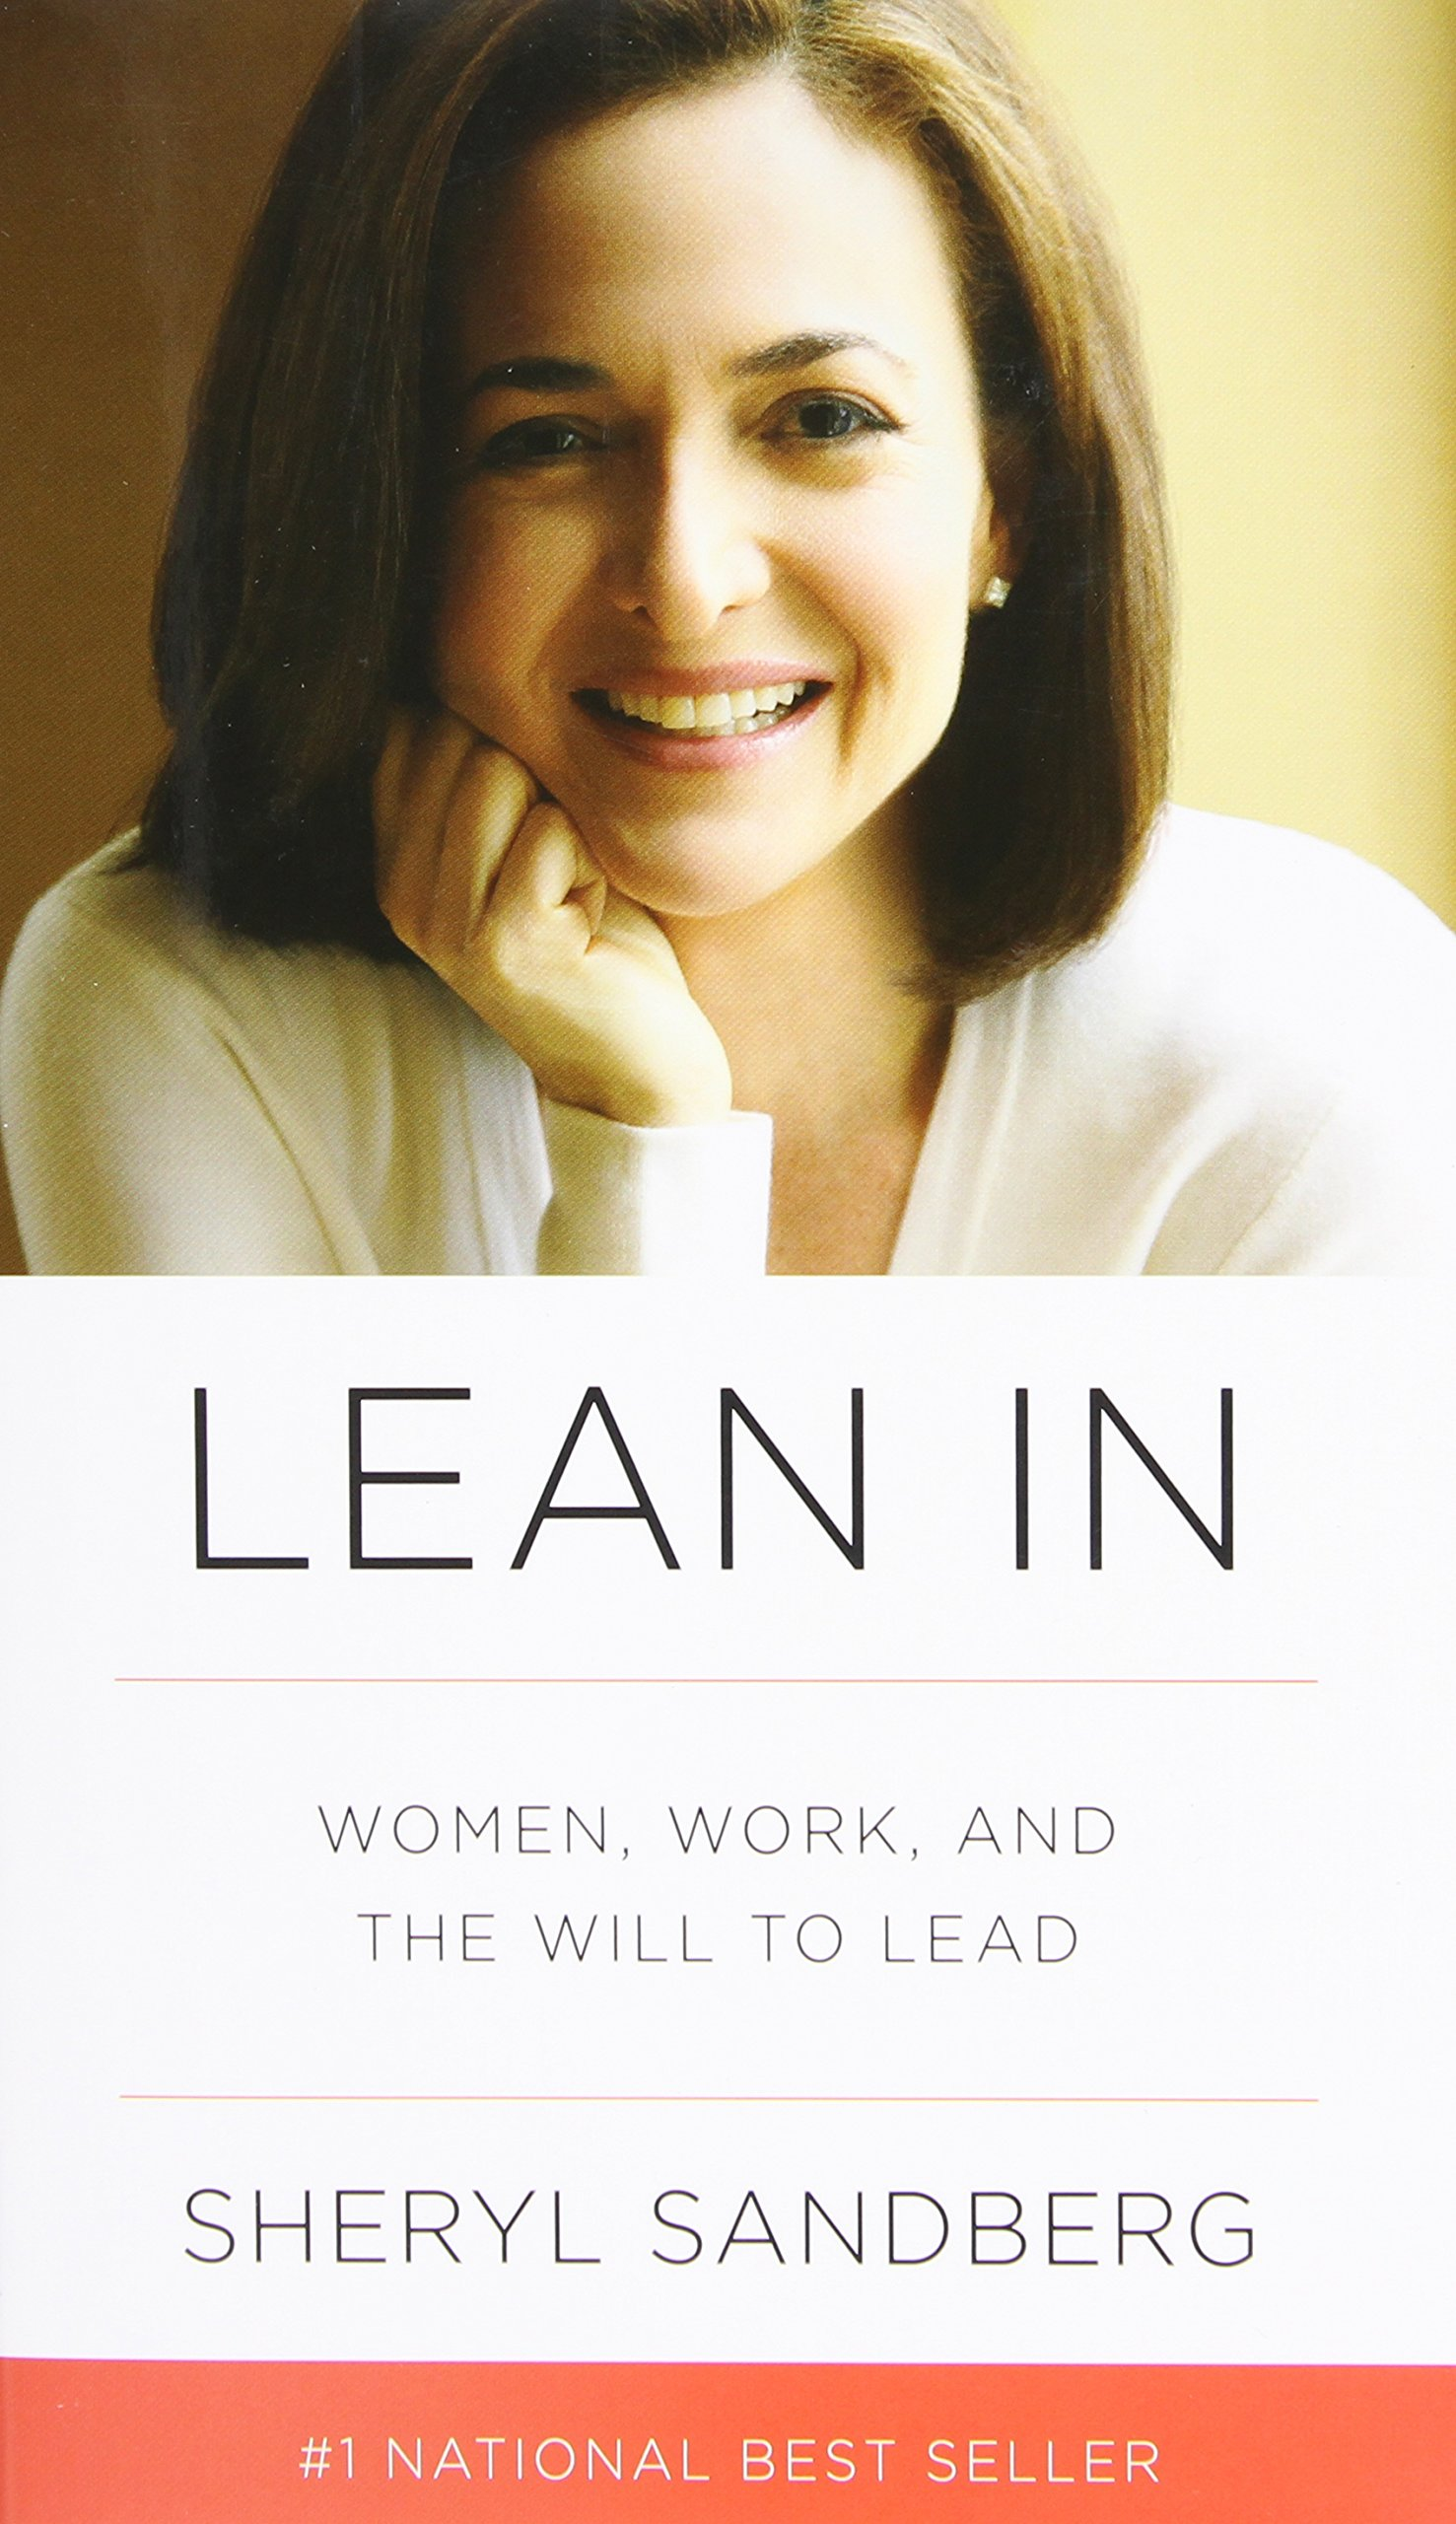 Lean In: Women, Work, and the Will to Lead ISBN-13 9780385349949